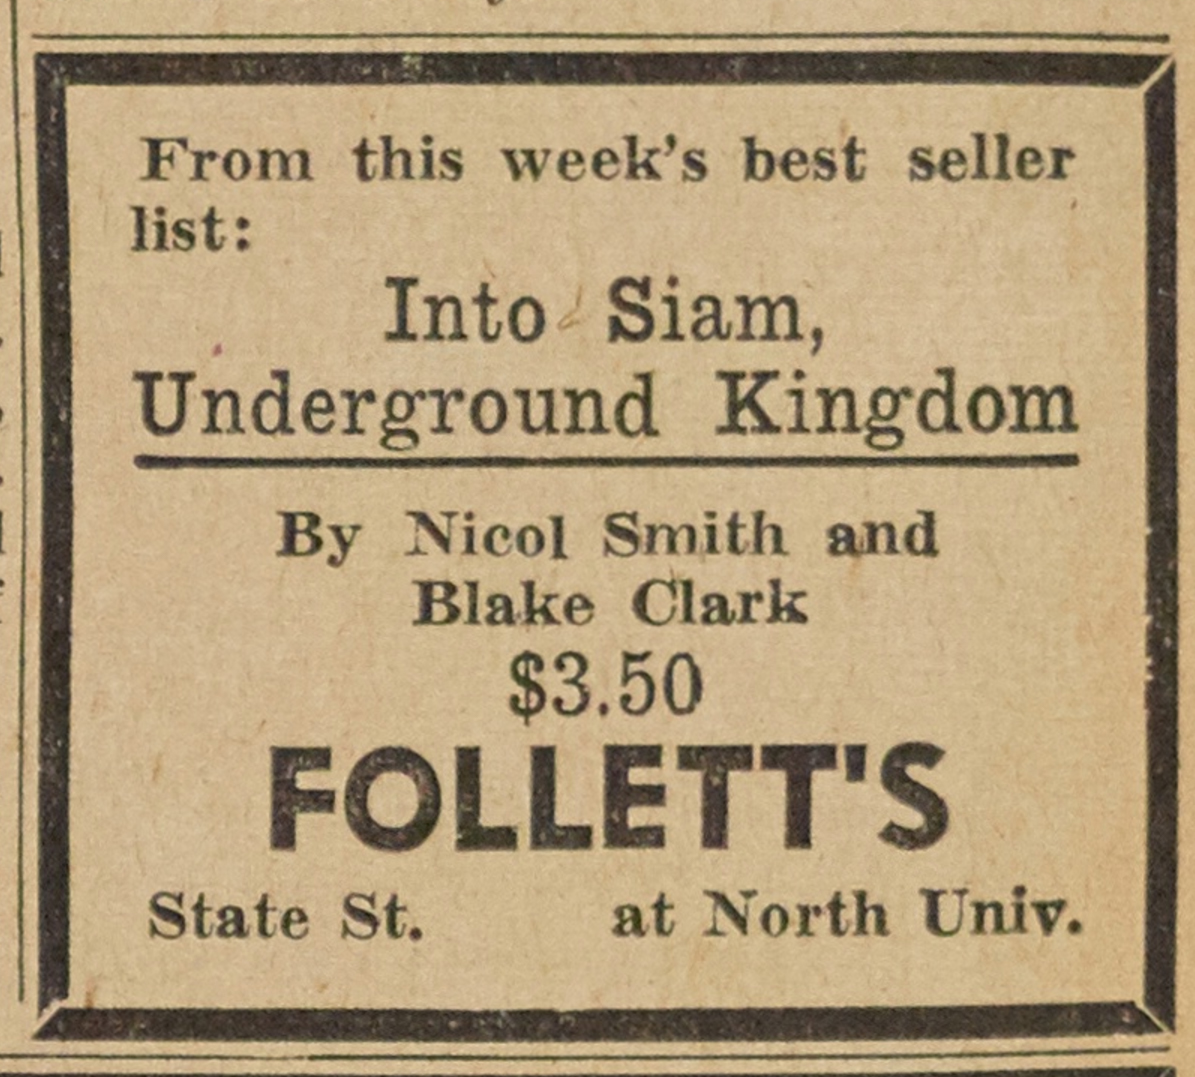 Follett's Book Store image